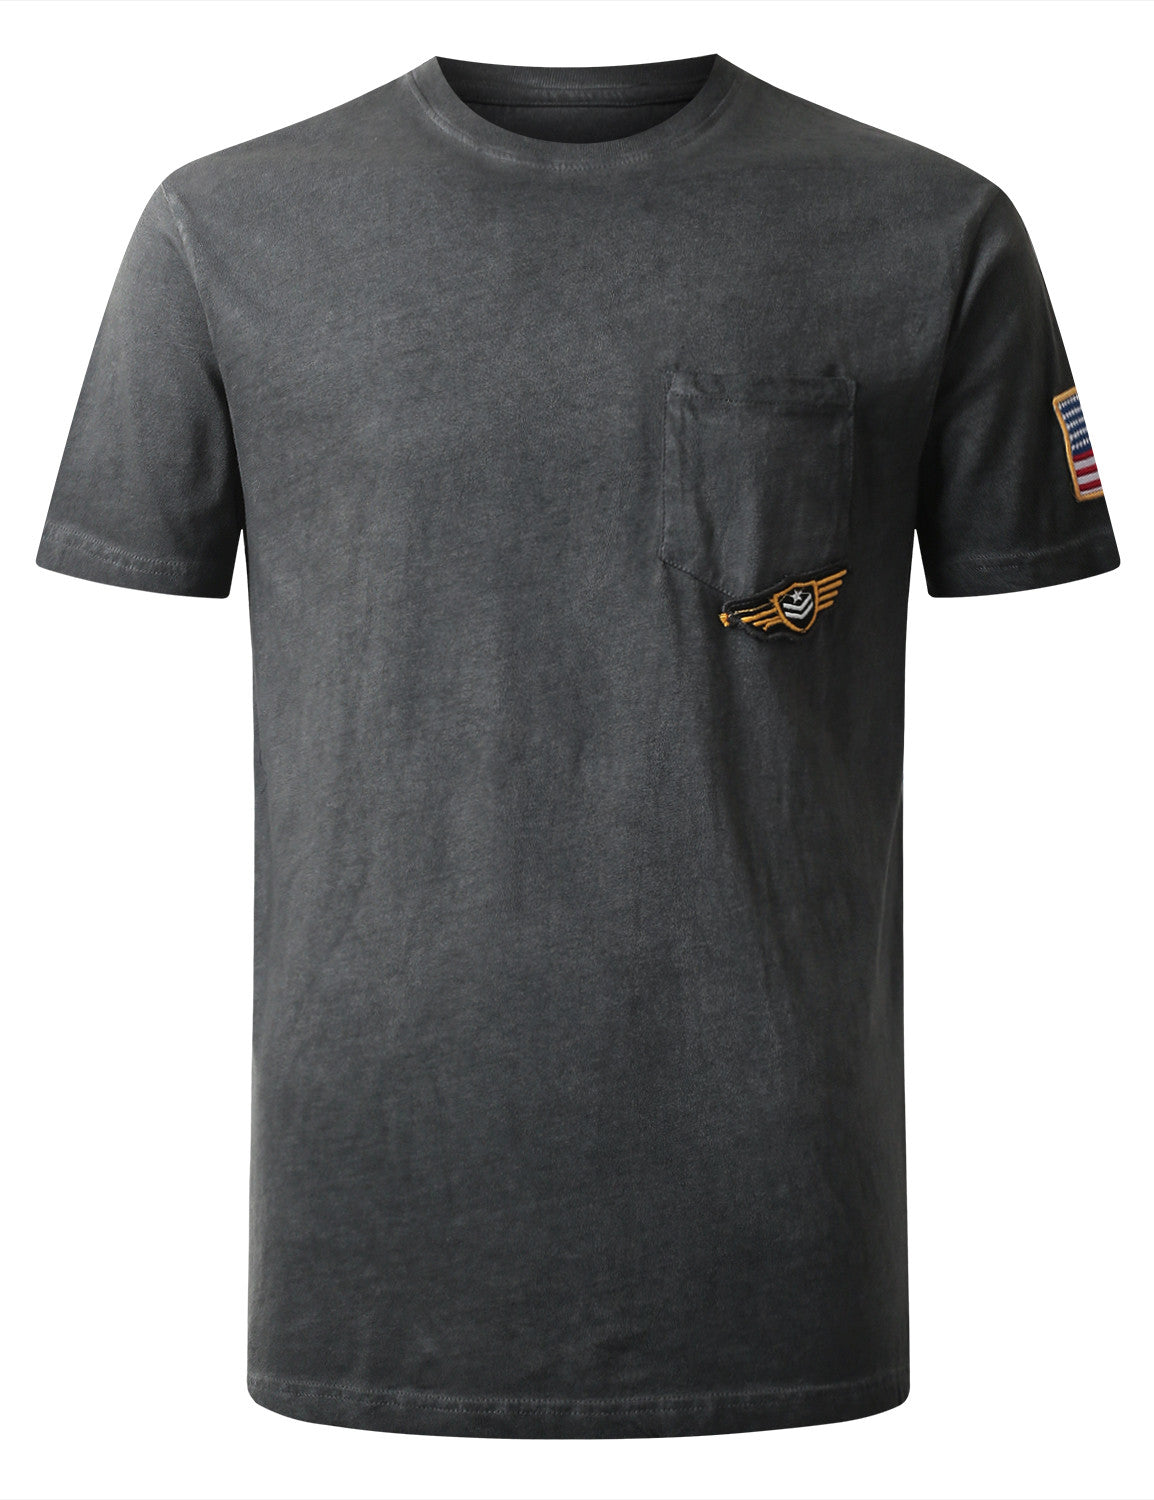 BLACK Embroidered Patch Pocket T-shirt - URBANCREWS